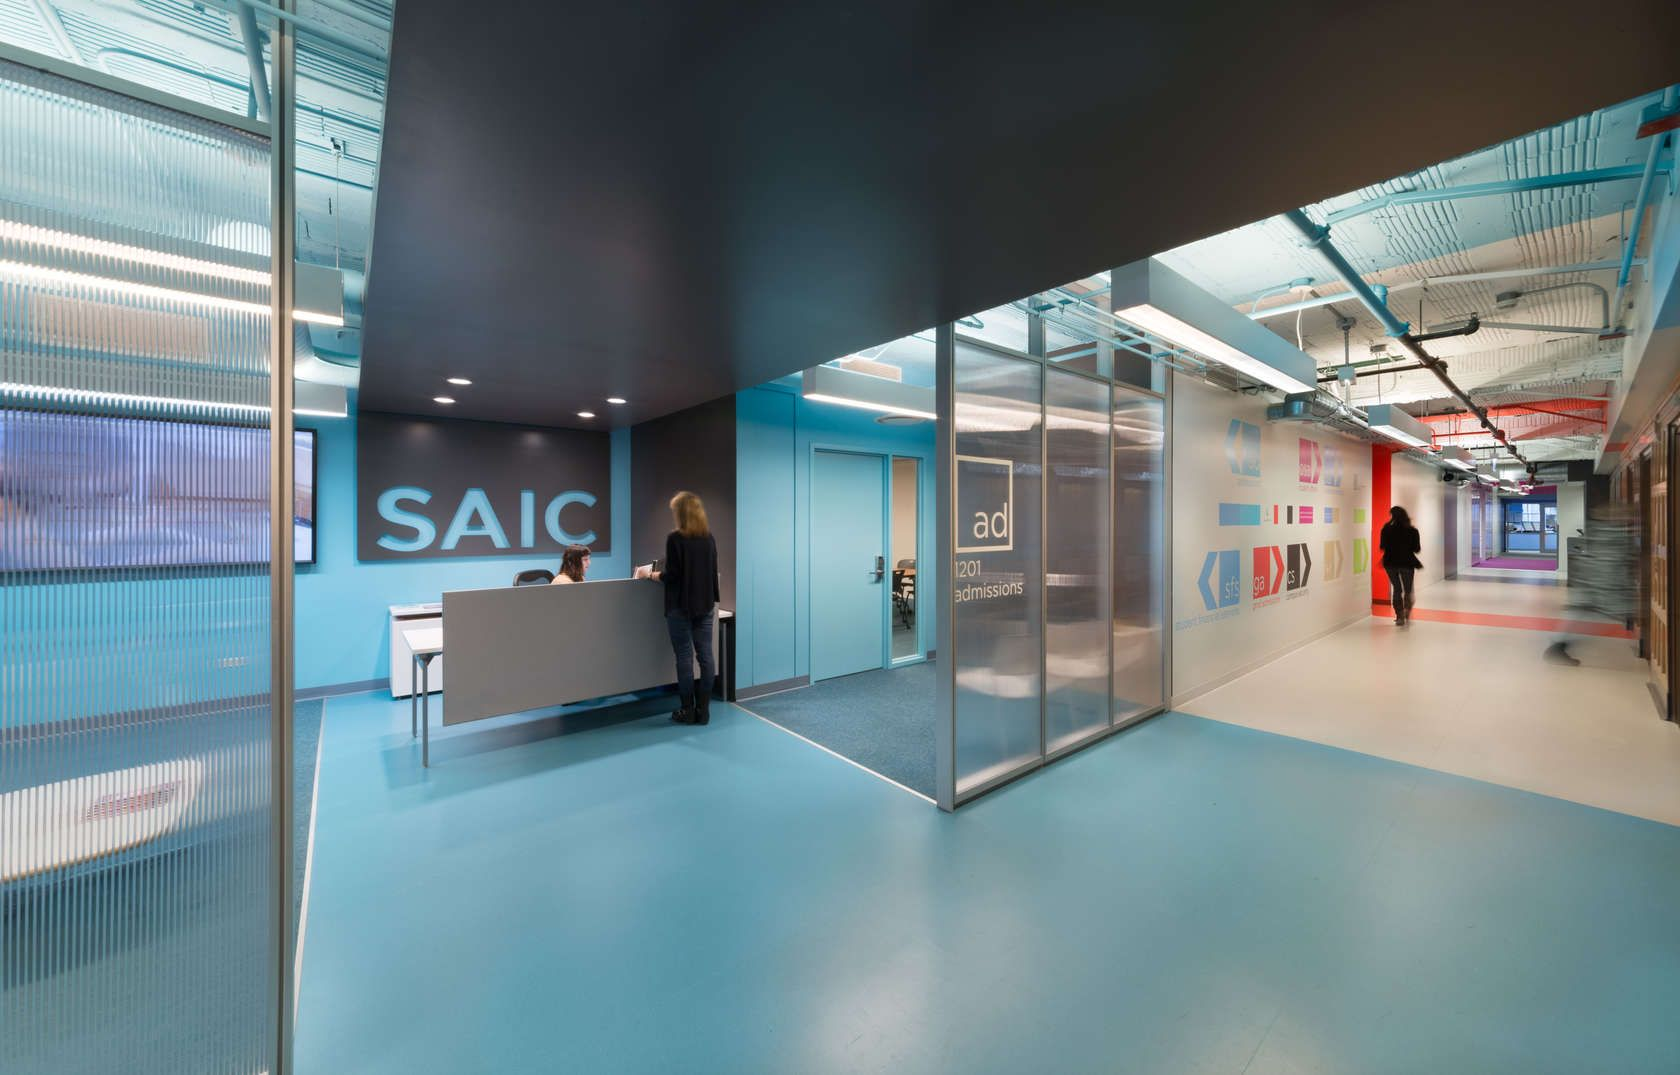 The School of the Art Institute of Chicago (SAIC) Admissions Office by JGMA